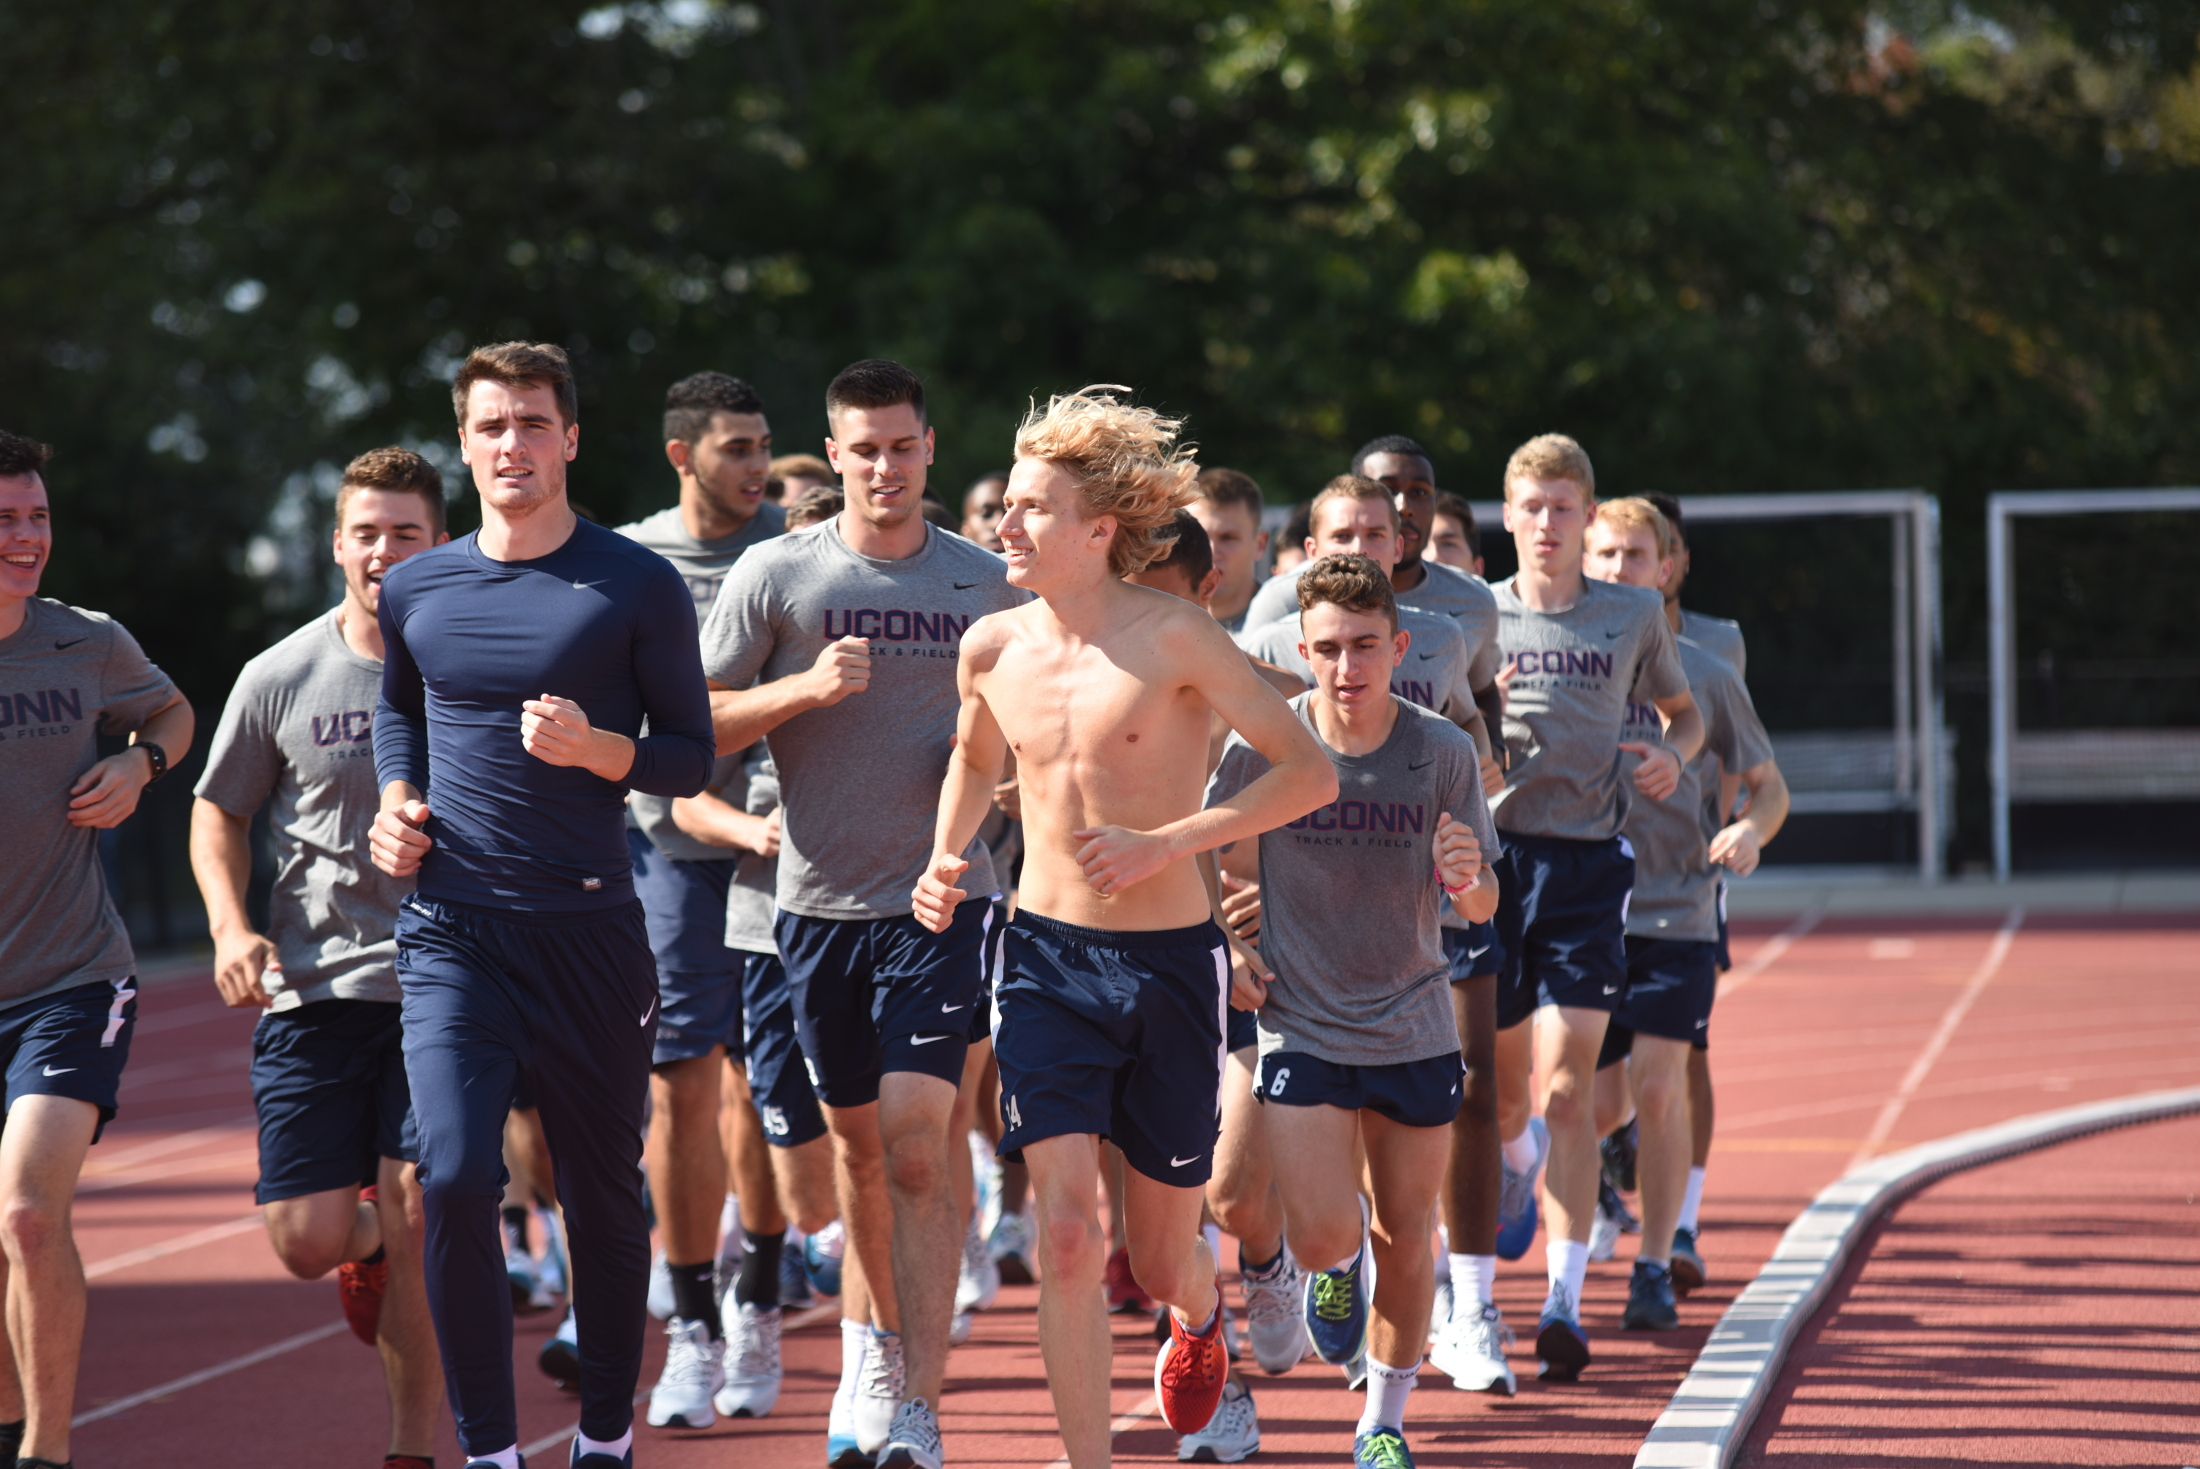 The UConn men's and women's cross-country teams both completed their regular seasons on Friday and now have 12 days until the American Athletic Conference Championships (Charlotte Lao/The Daily Campus)